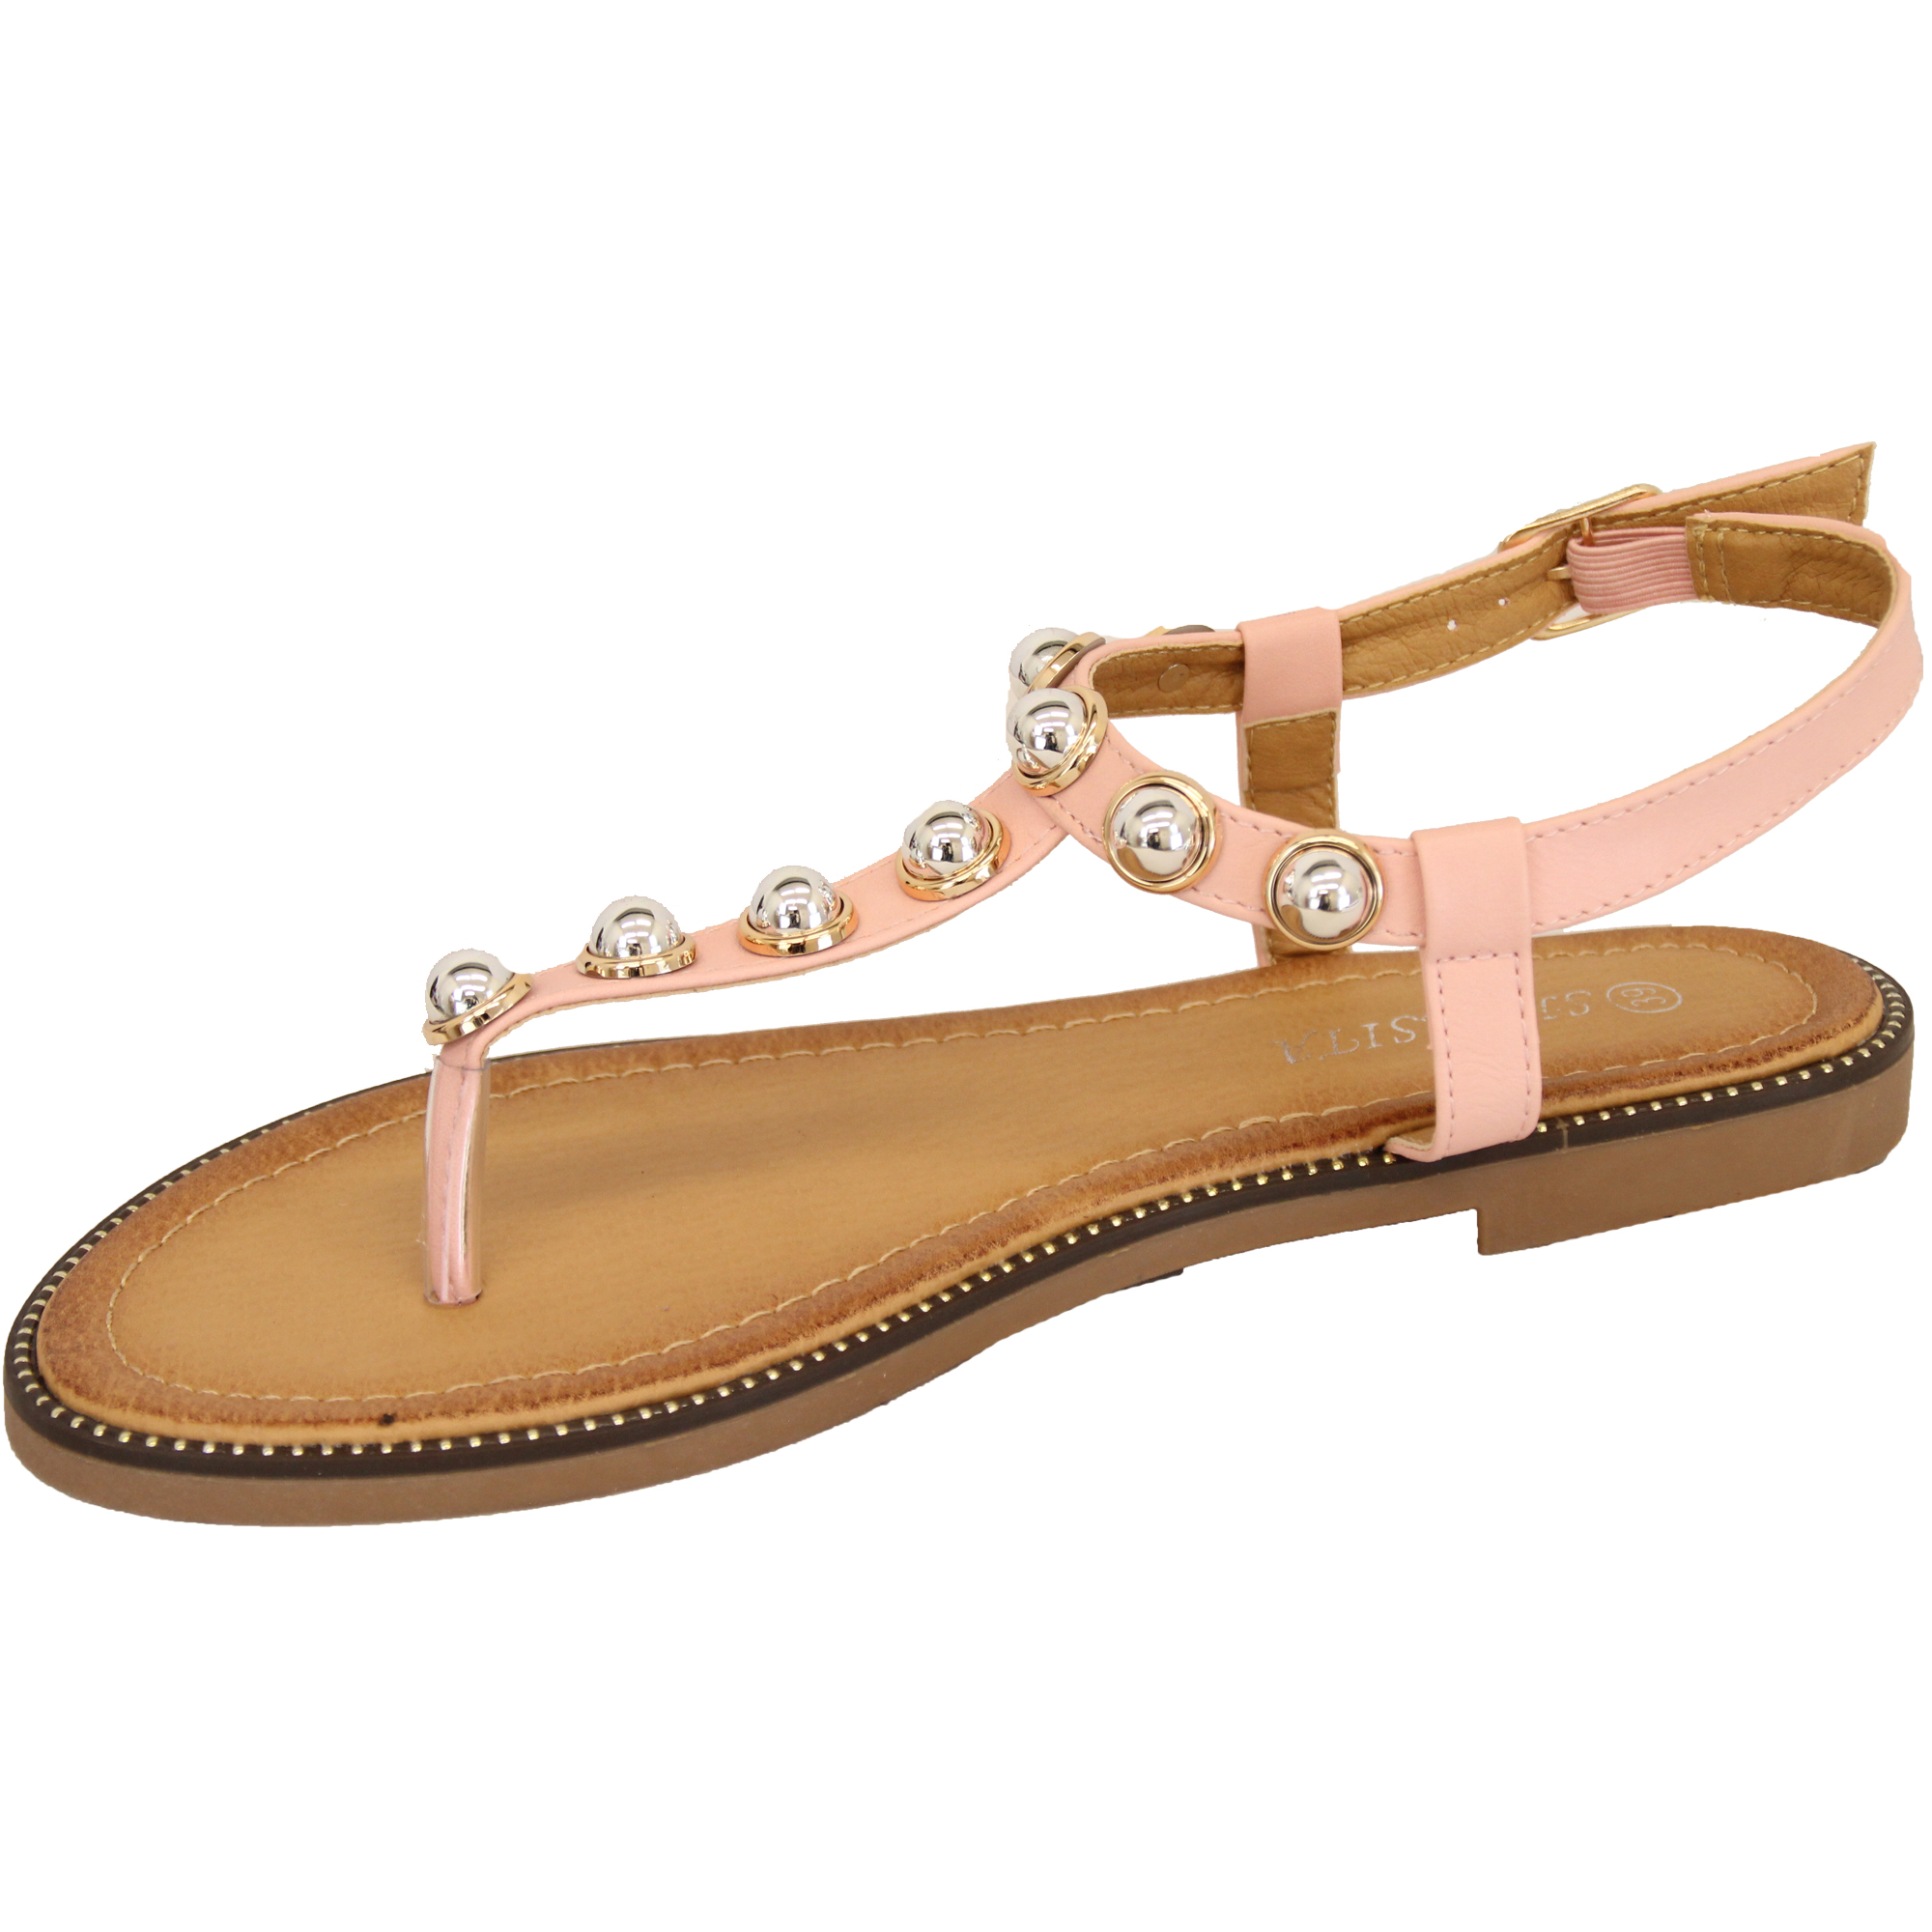 Details about Ladies Flat Sandals Womens Pearl Toe Post Buckle Shoes Fashion Summer Party New